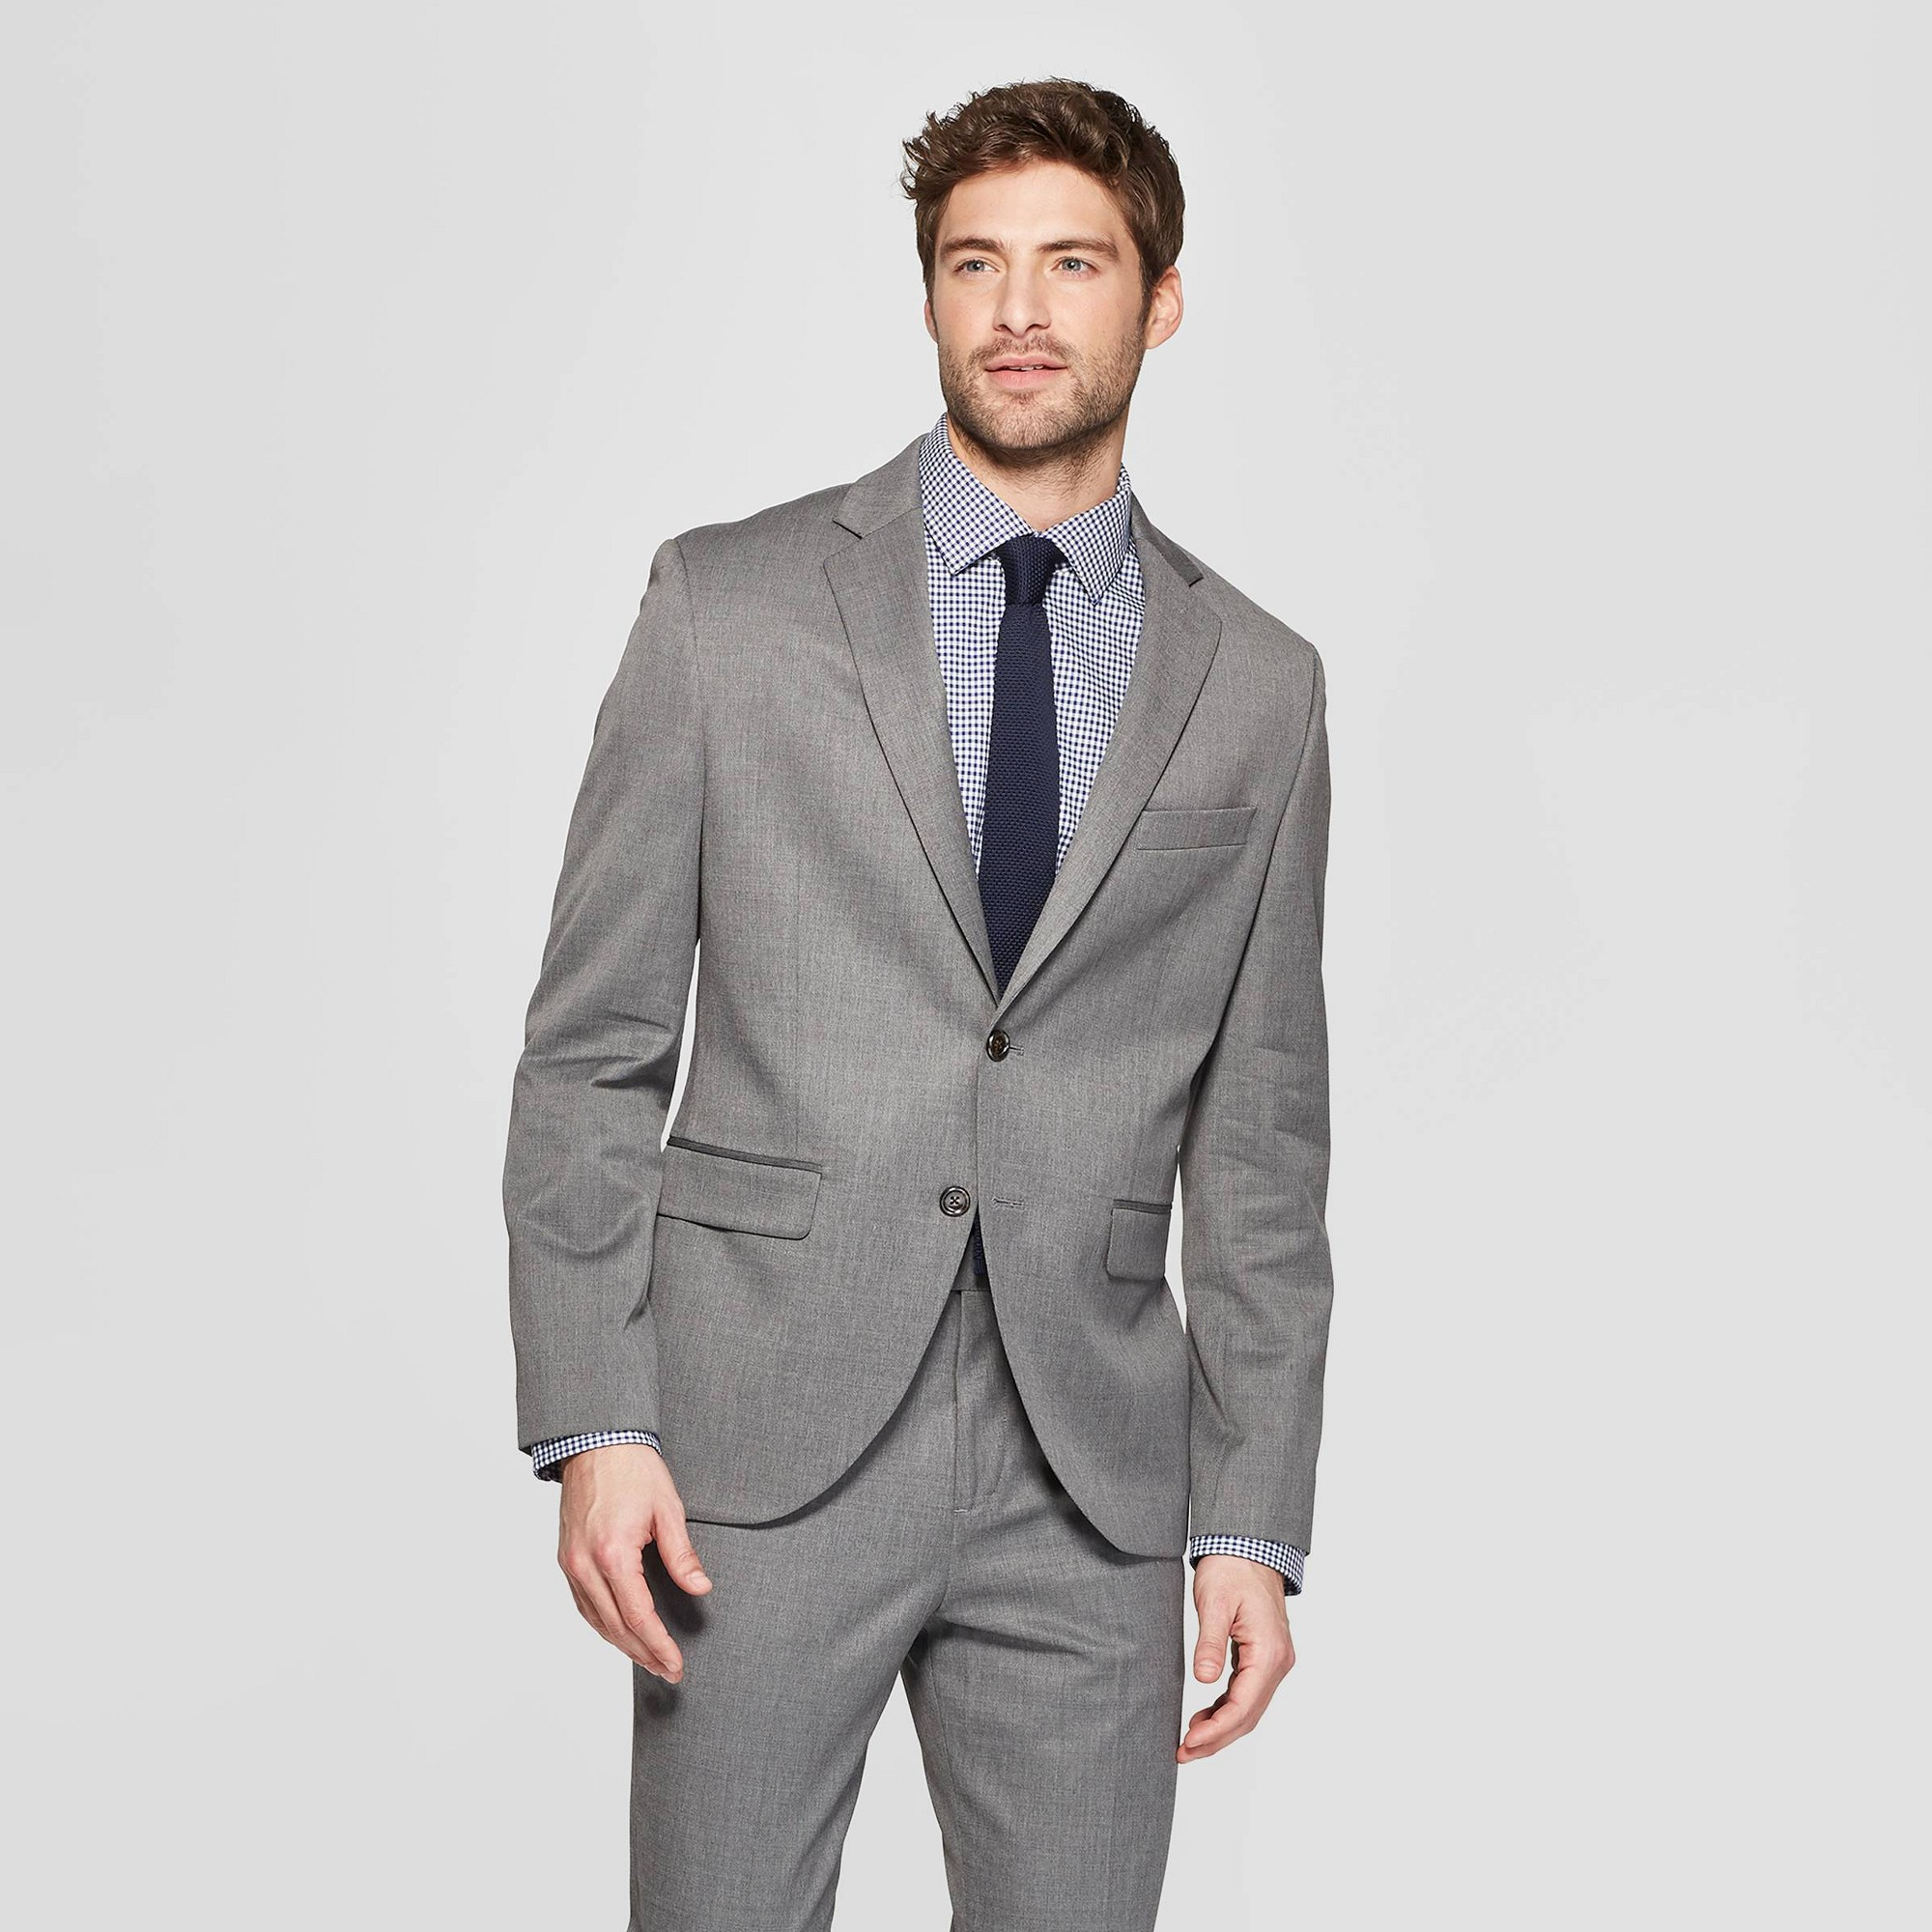 Men's Slim Fit Suit Jacket - Goodfellow & Co Thundering Gray 38S